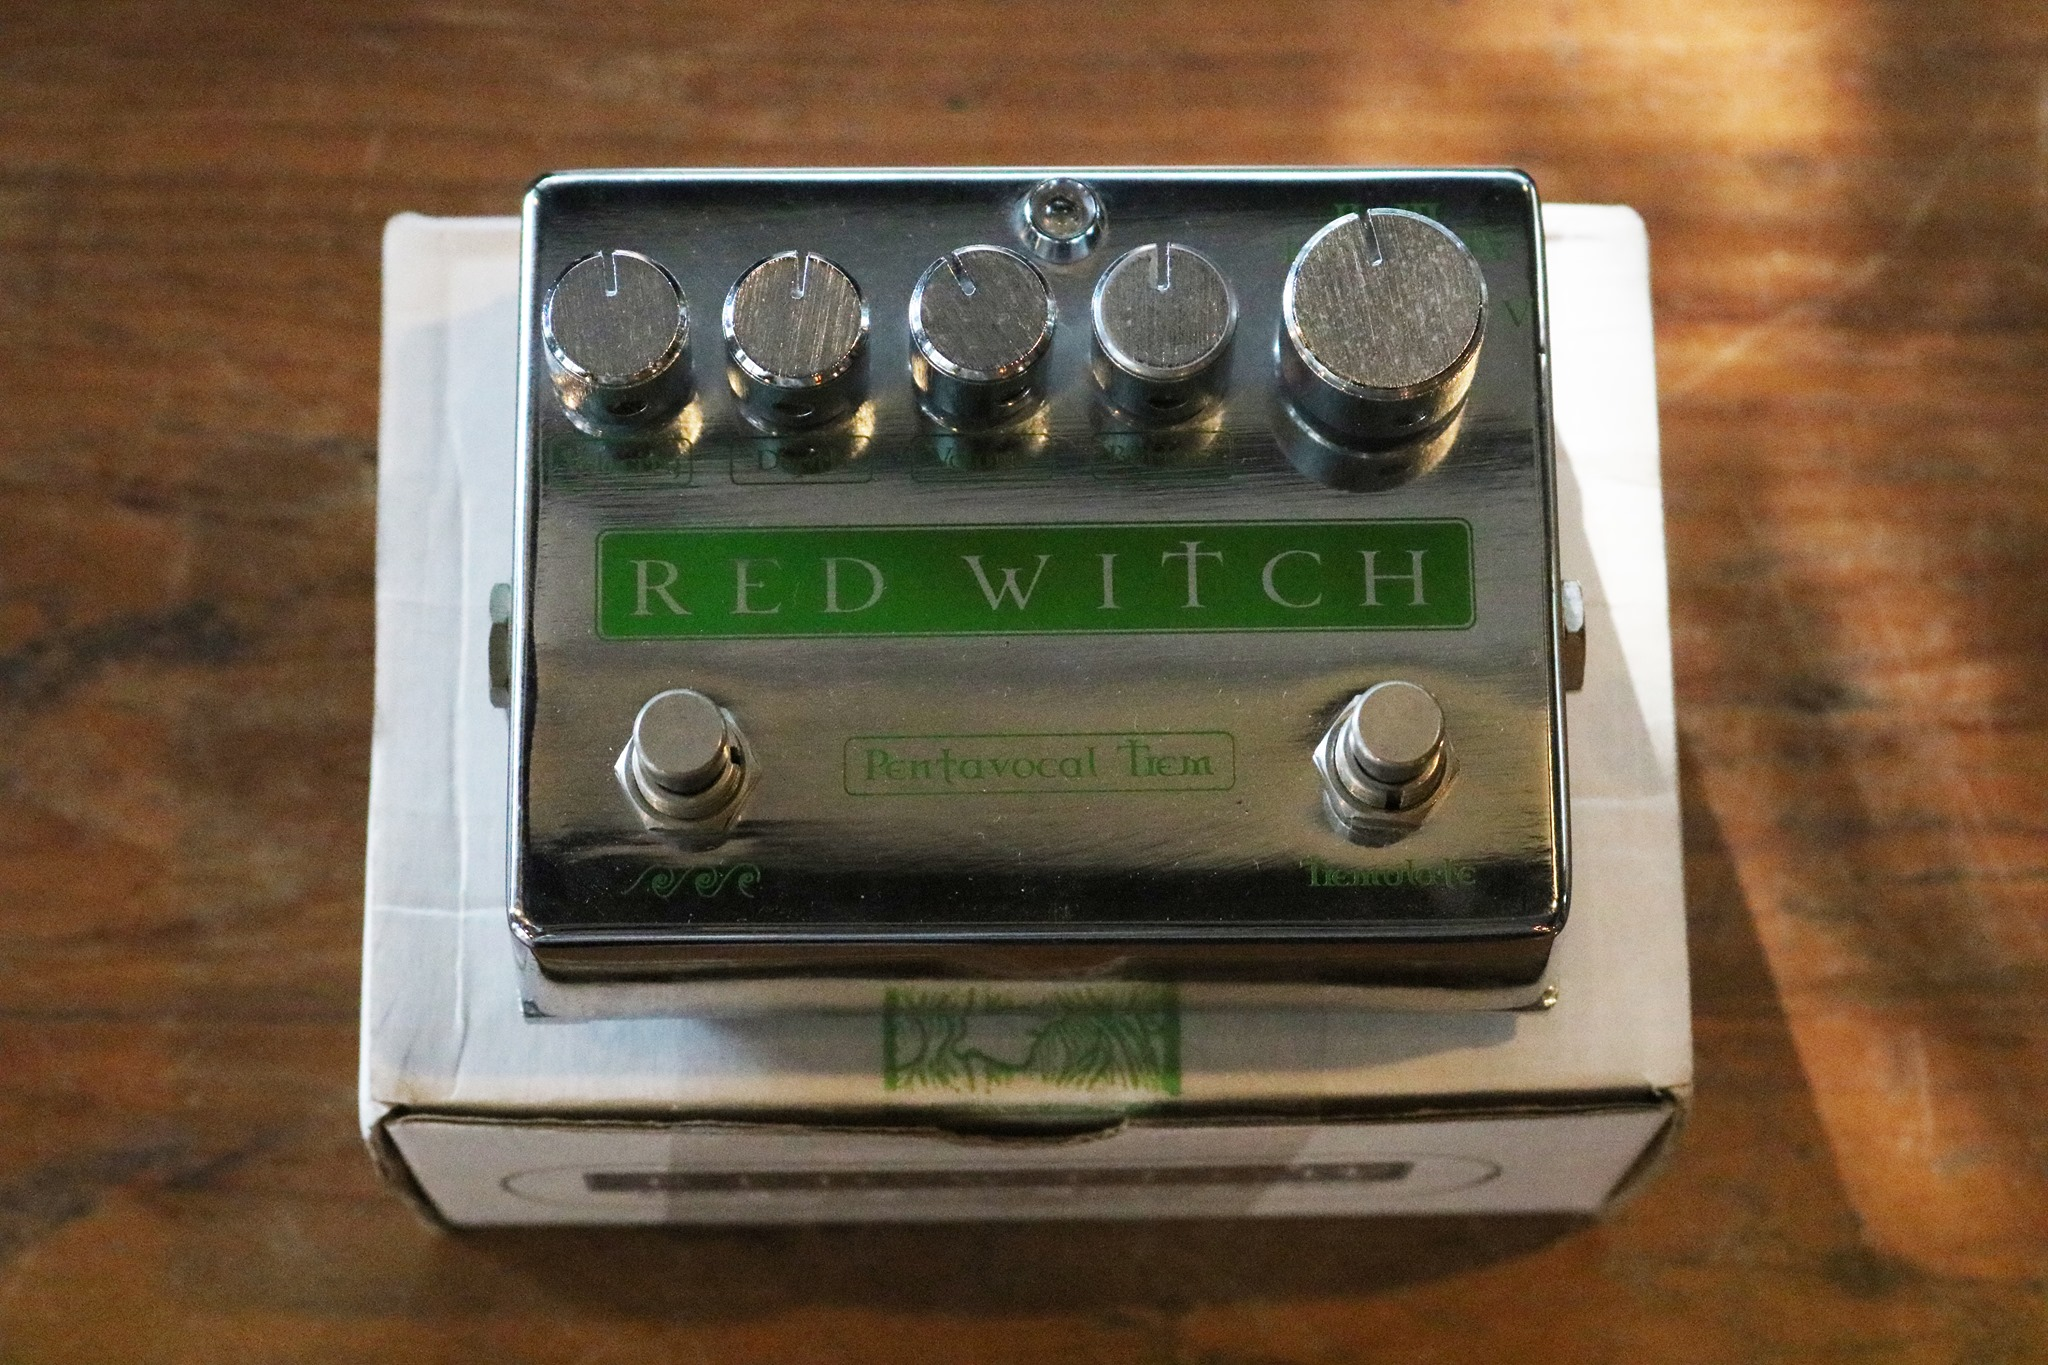 Rare Red Witch Pentavocal Ticm